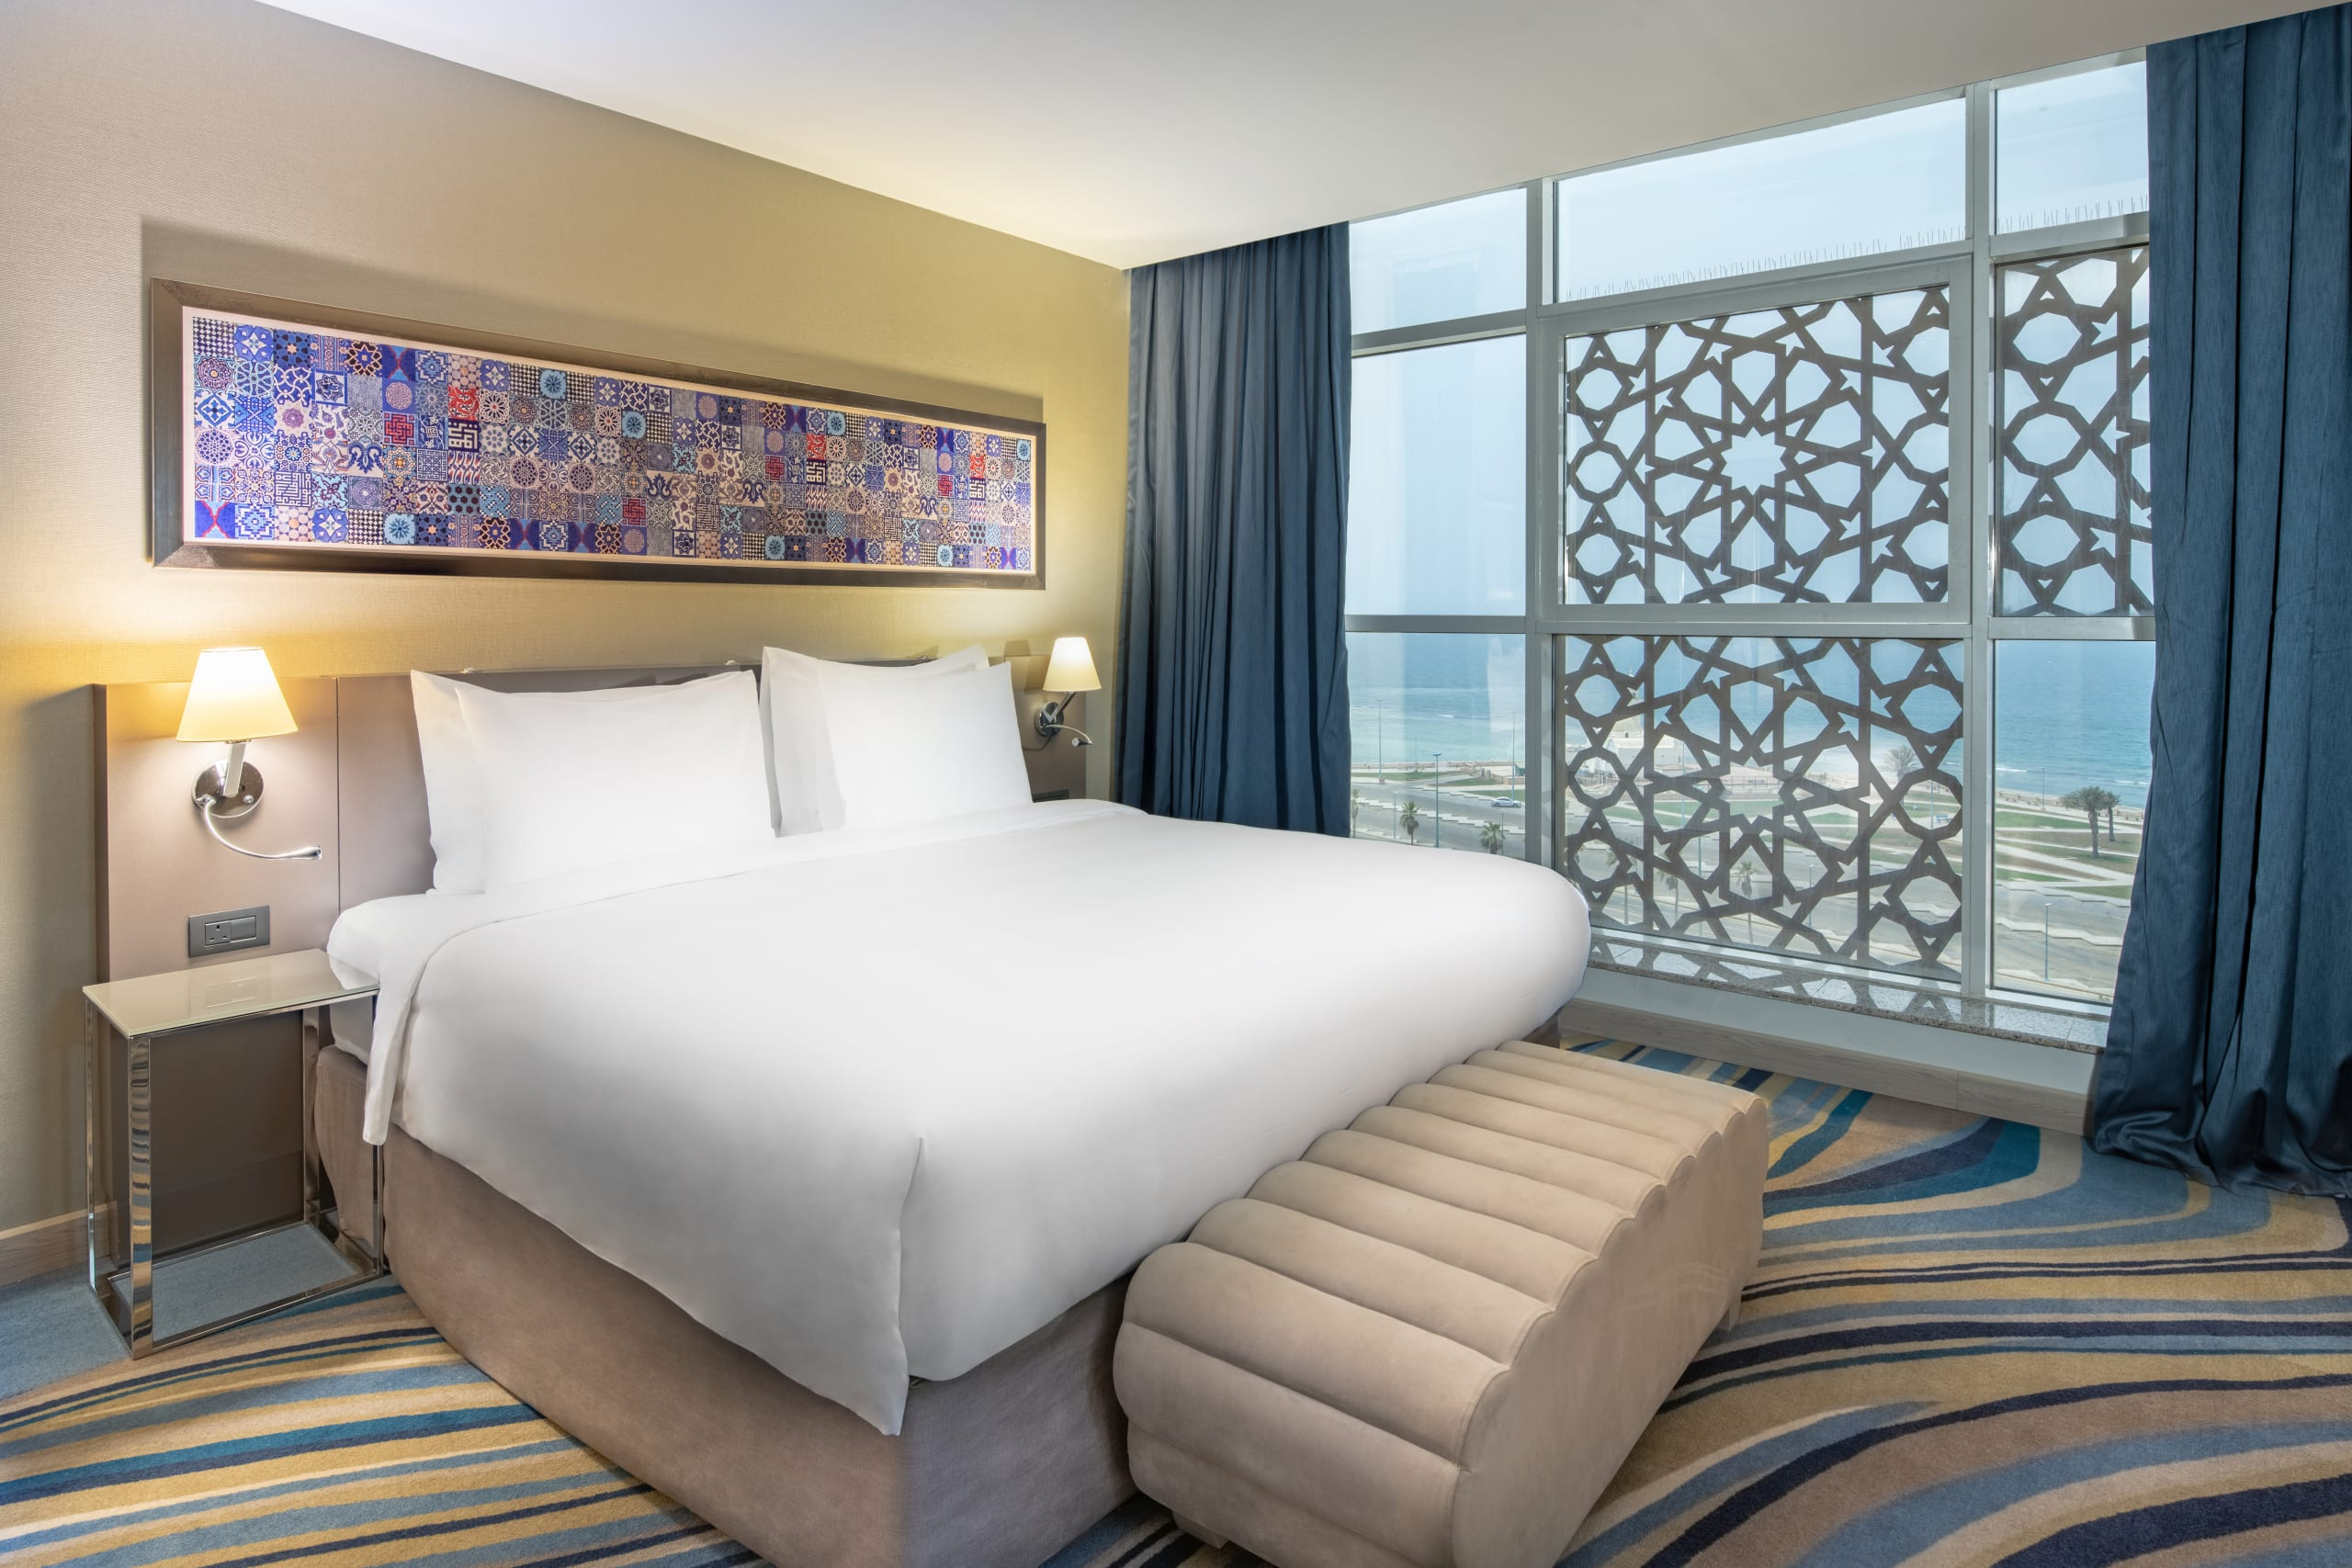 Radisson Blu Across the UAE – Find Your Hotel Haven While You Explore the Emirates